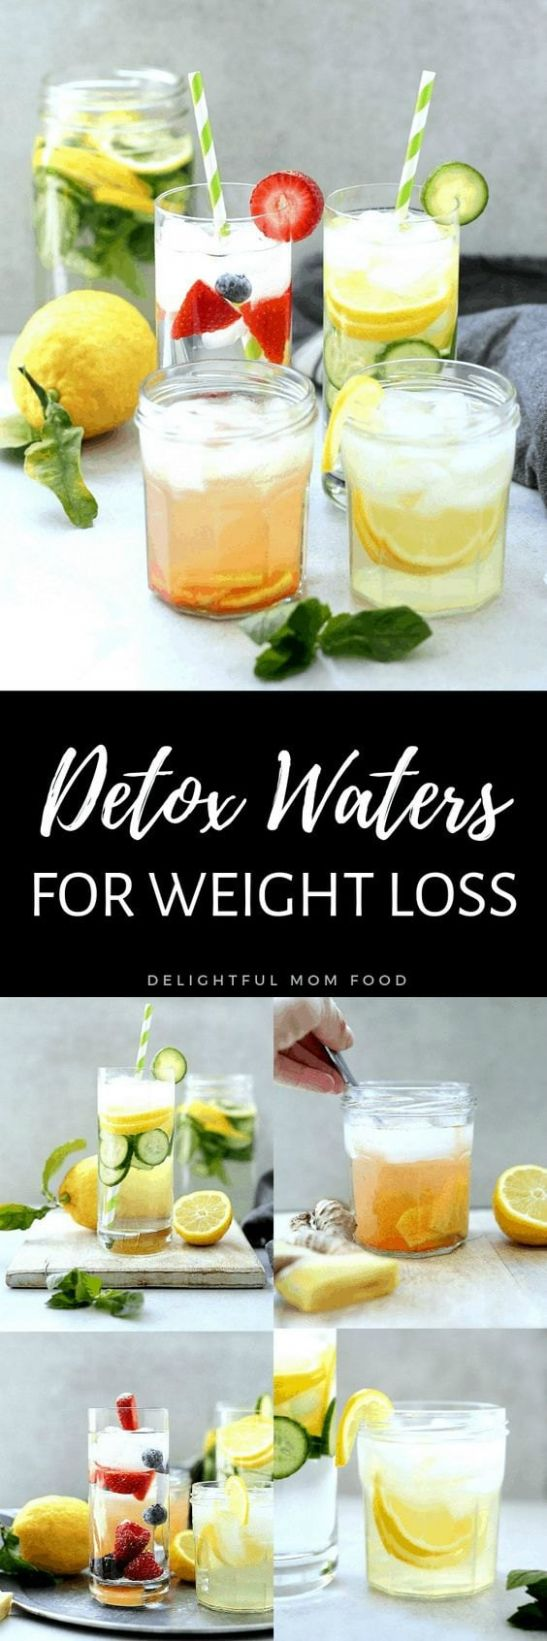 11 Detox Water Recipes For Weight Loss & Body Cleanse | Delightful ...